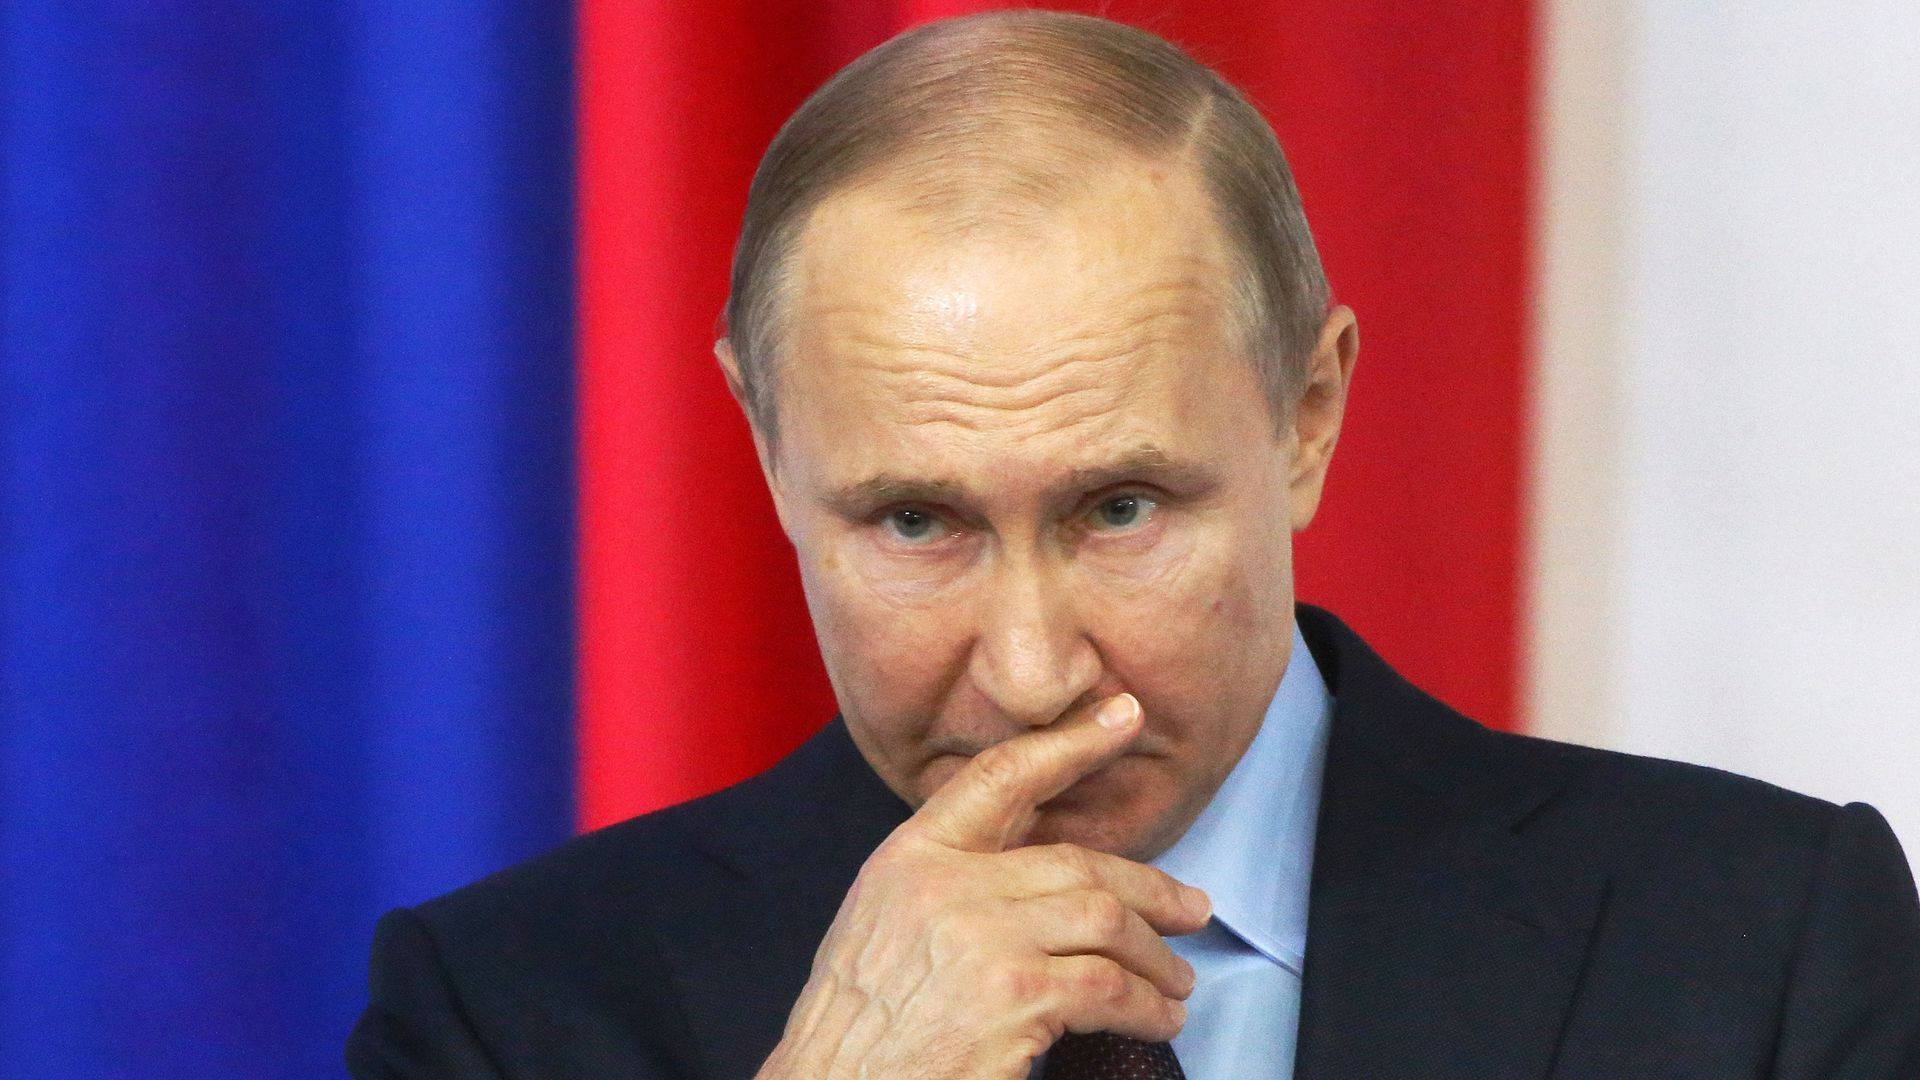 President Putin gives a speech while campaigning for re-election